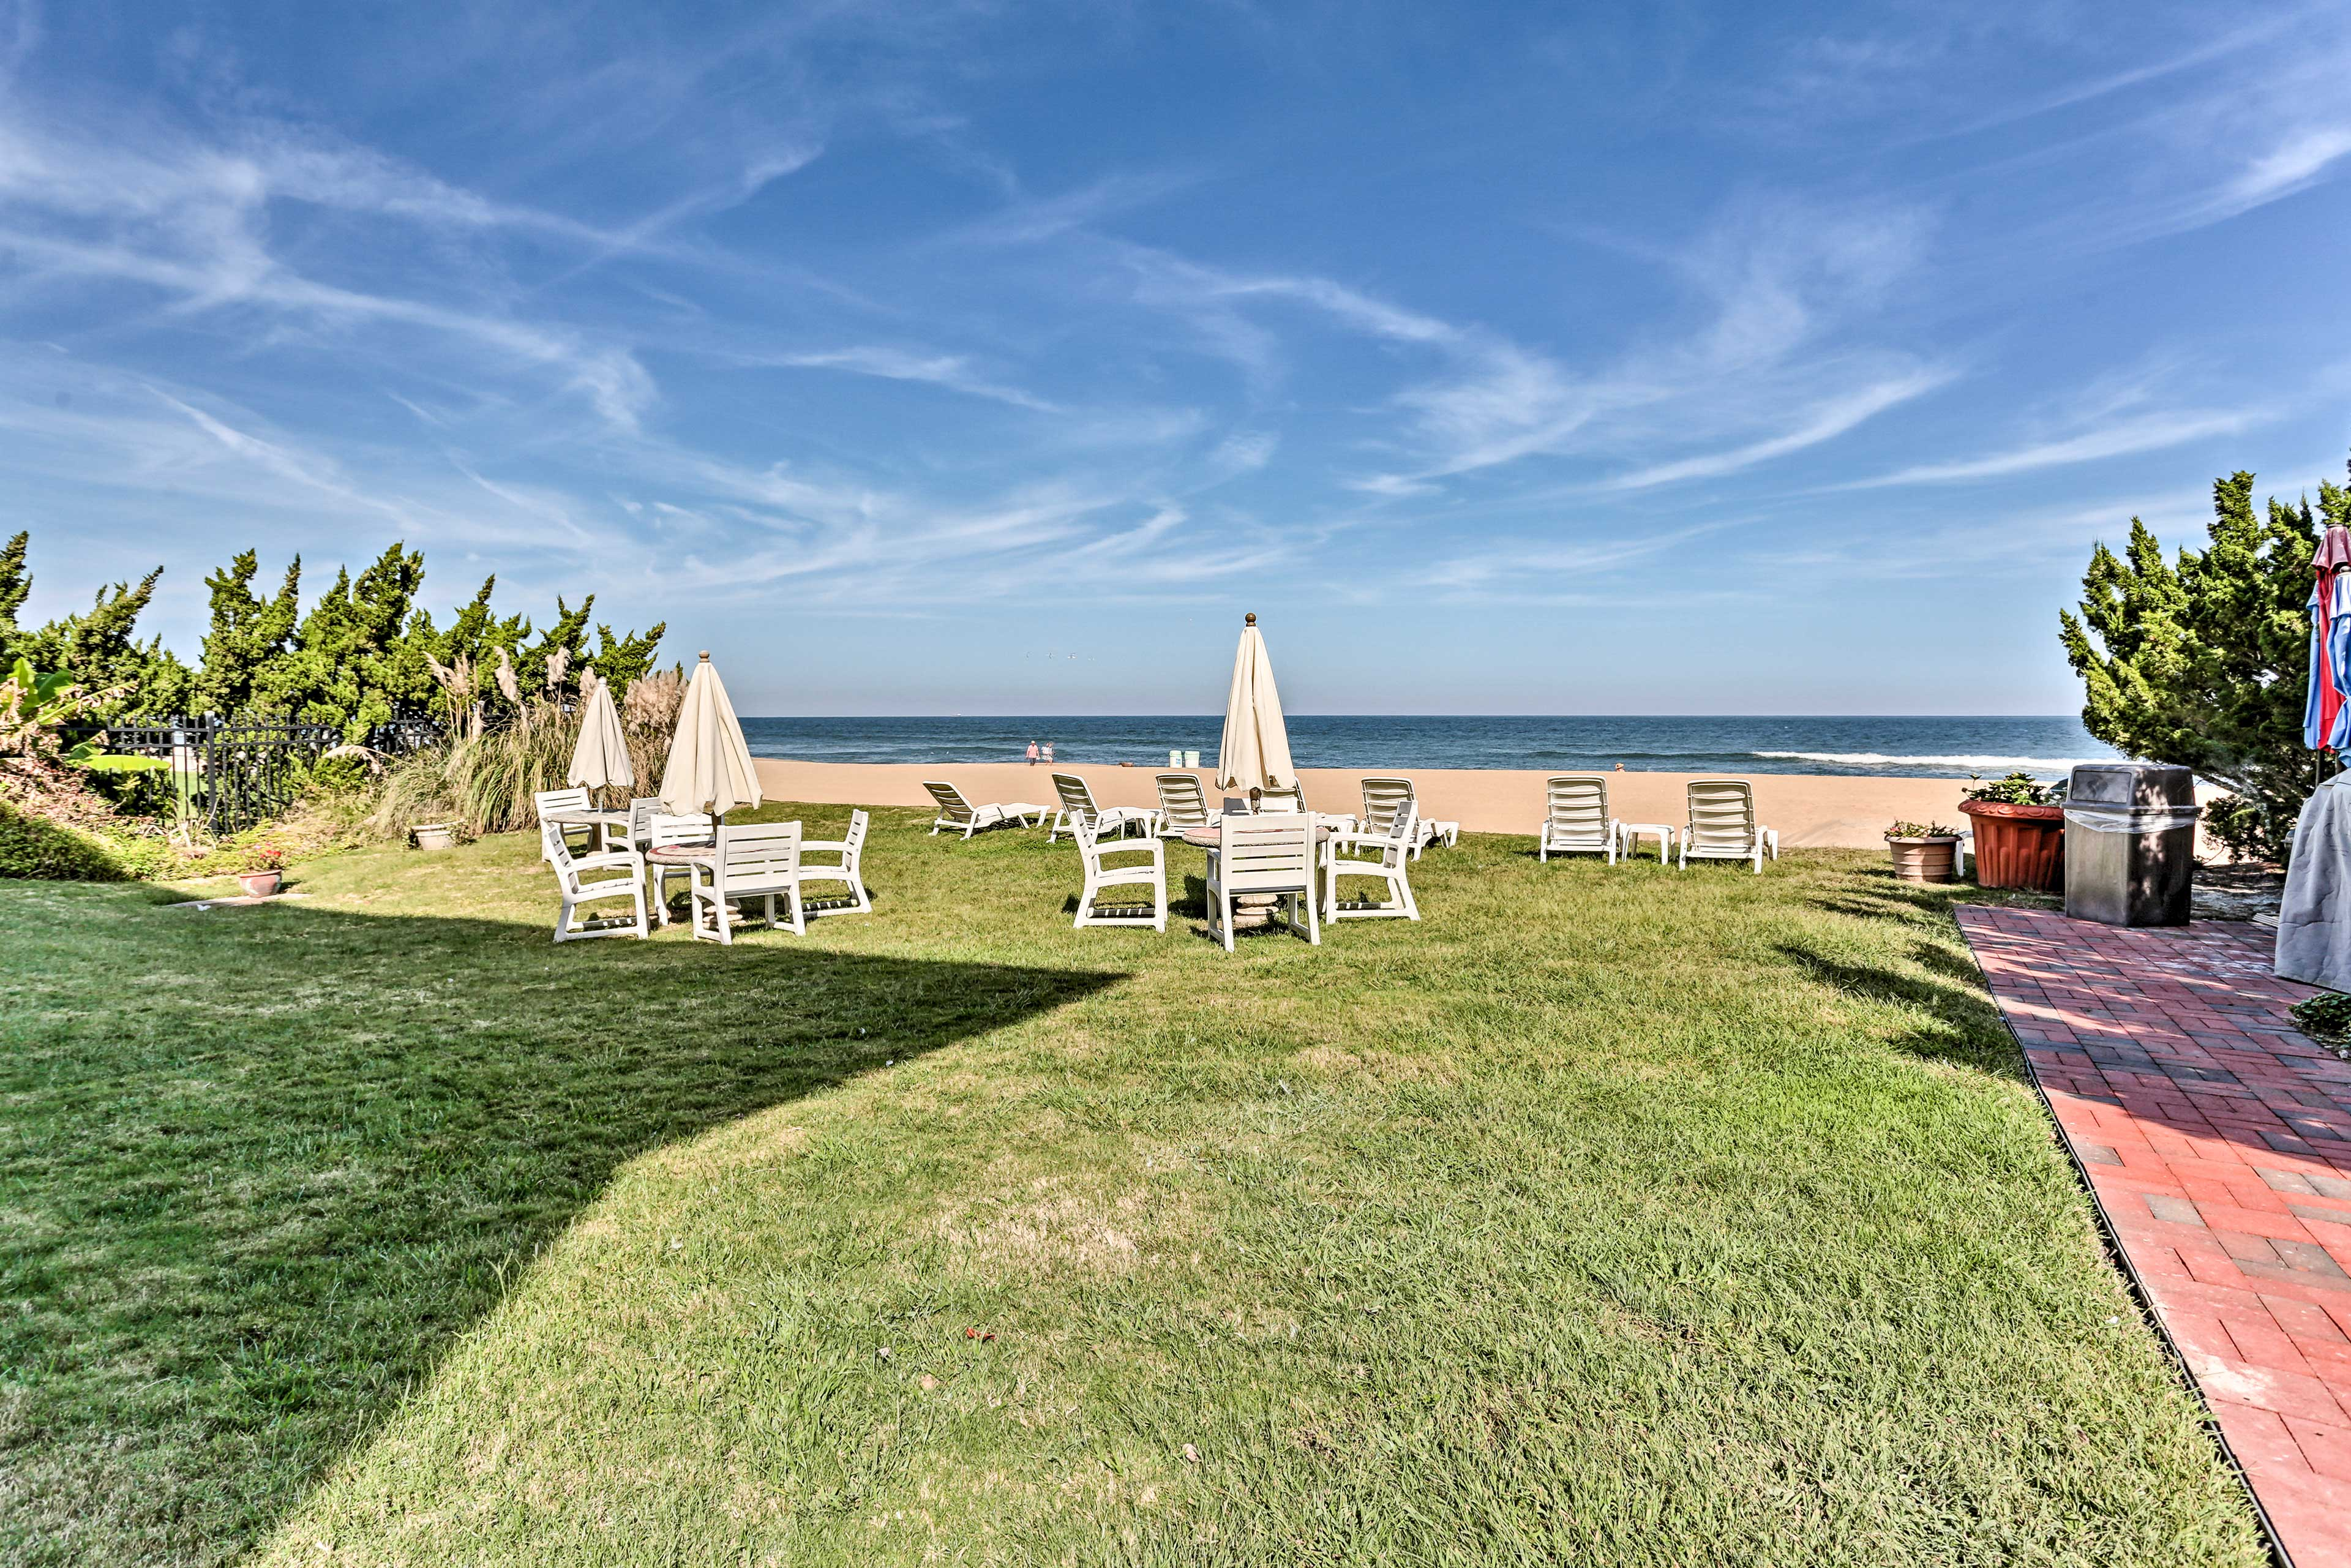 Enjoy unobstructed views of the water from this beachfront area.